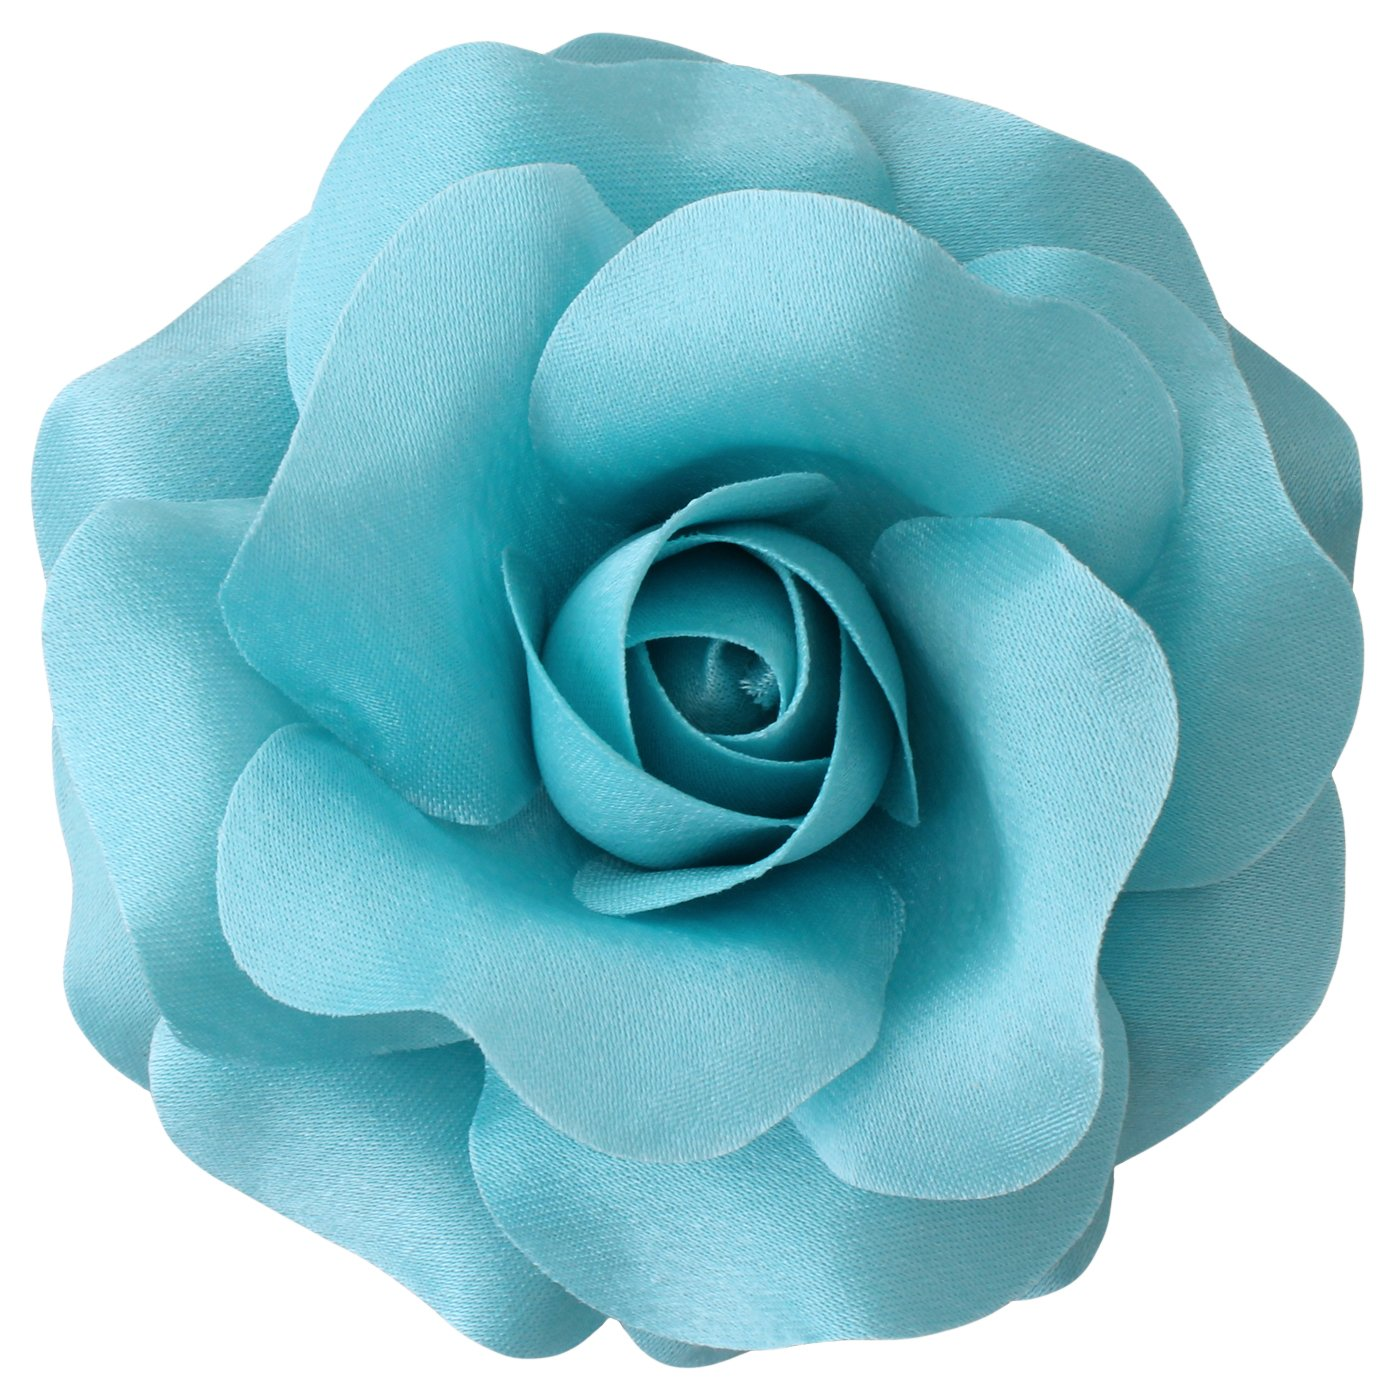 Amazon sara monica flower hair clip and pin rose made in the amazon sara monica flower hair clip and pin rose made in the usa aqua health personal care izmirmasajfo